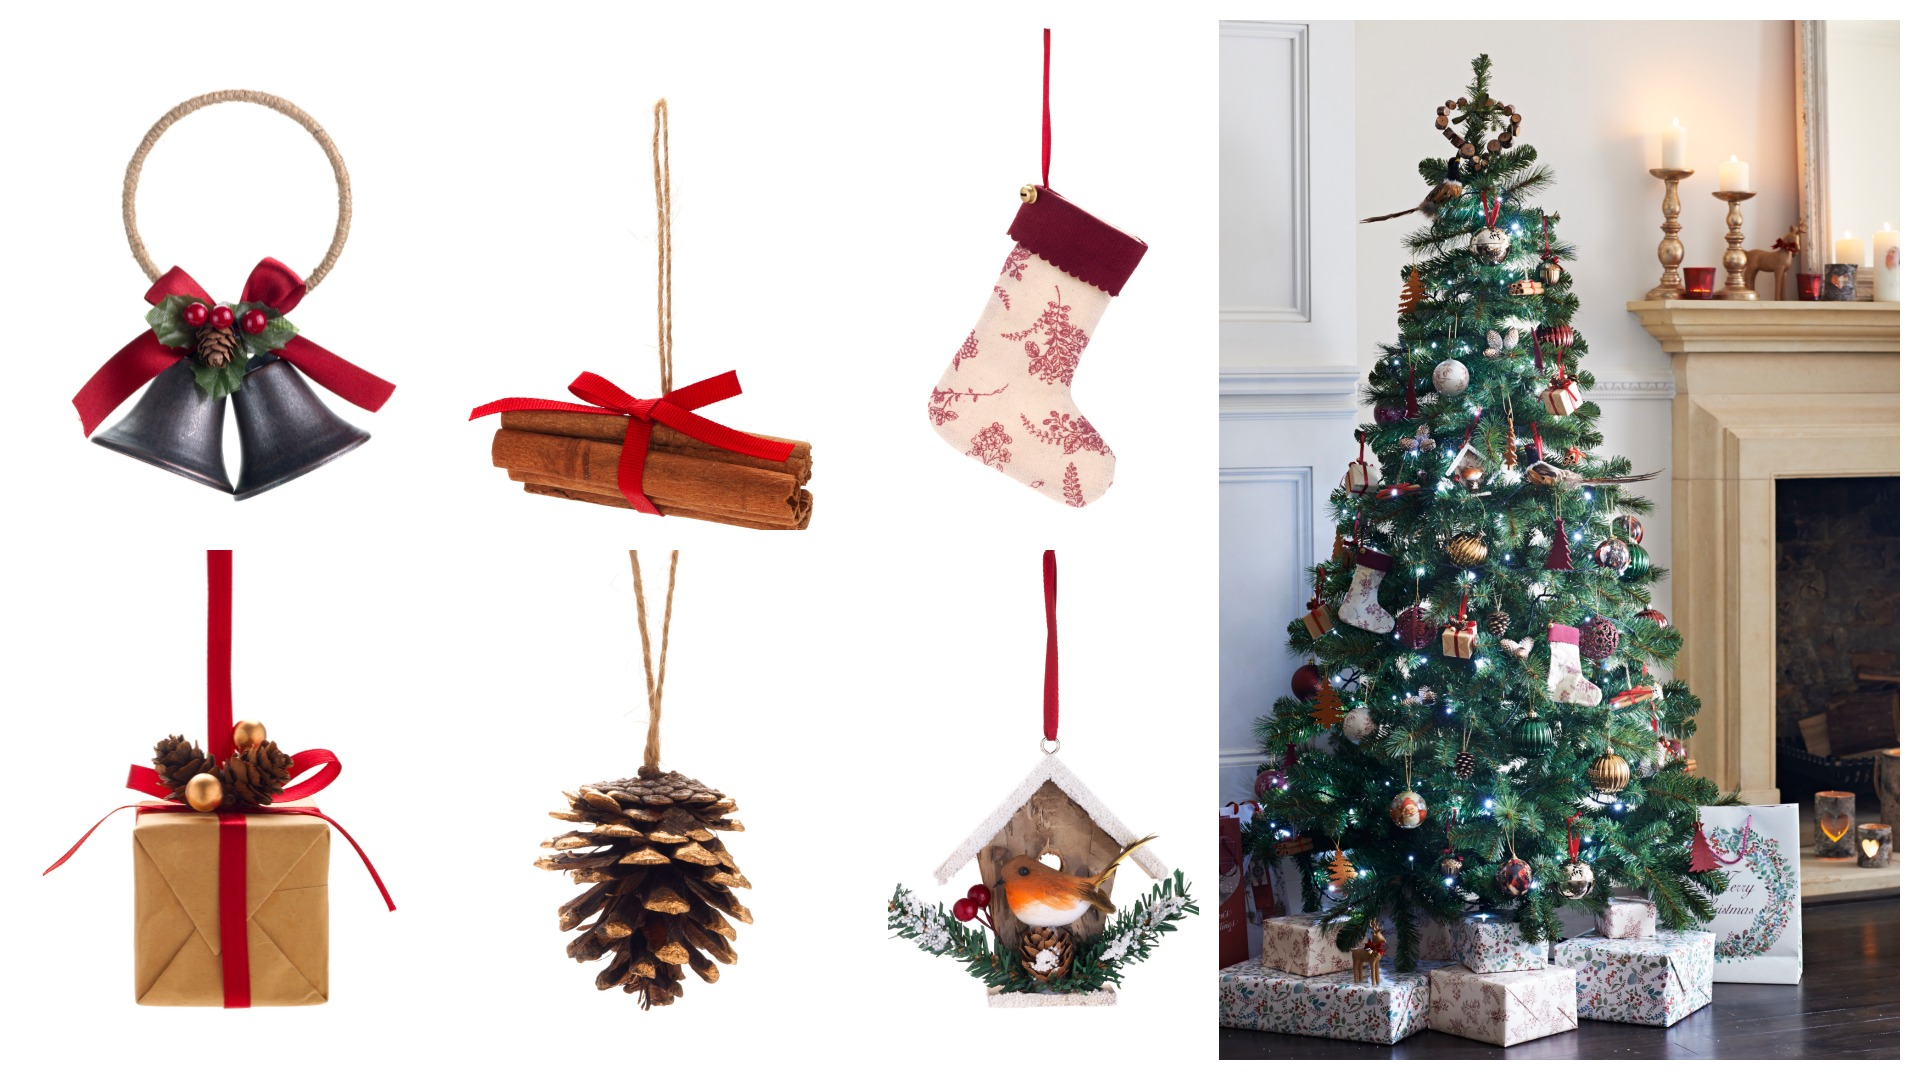 Go for elegant, modern Christmas decorations this year